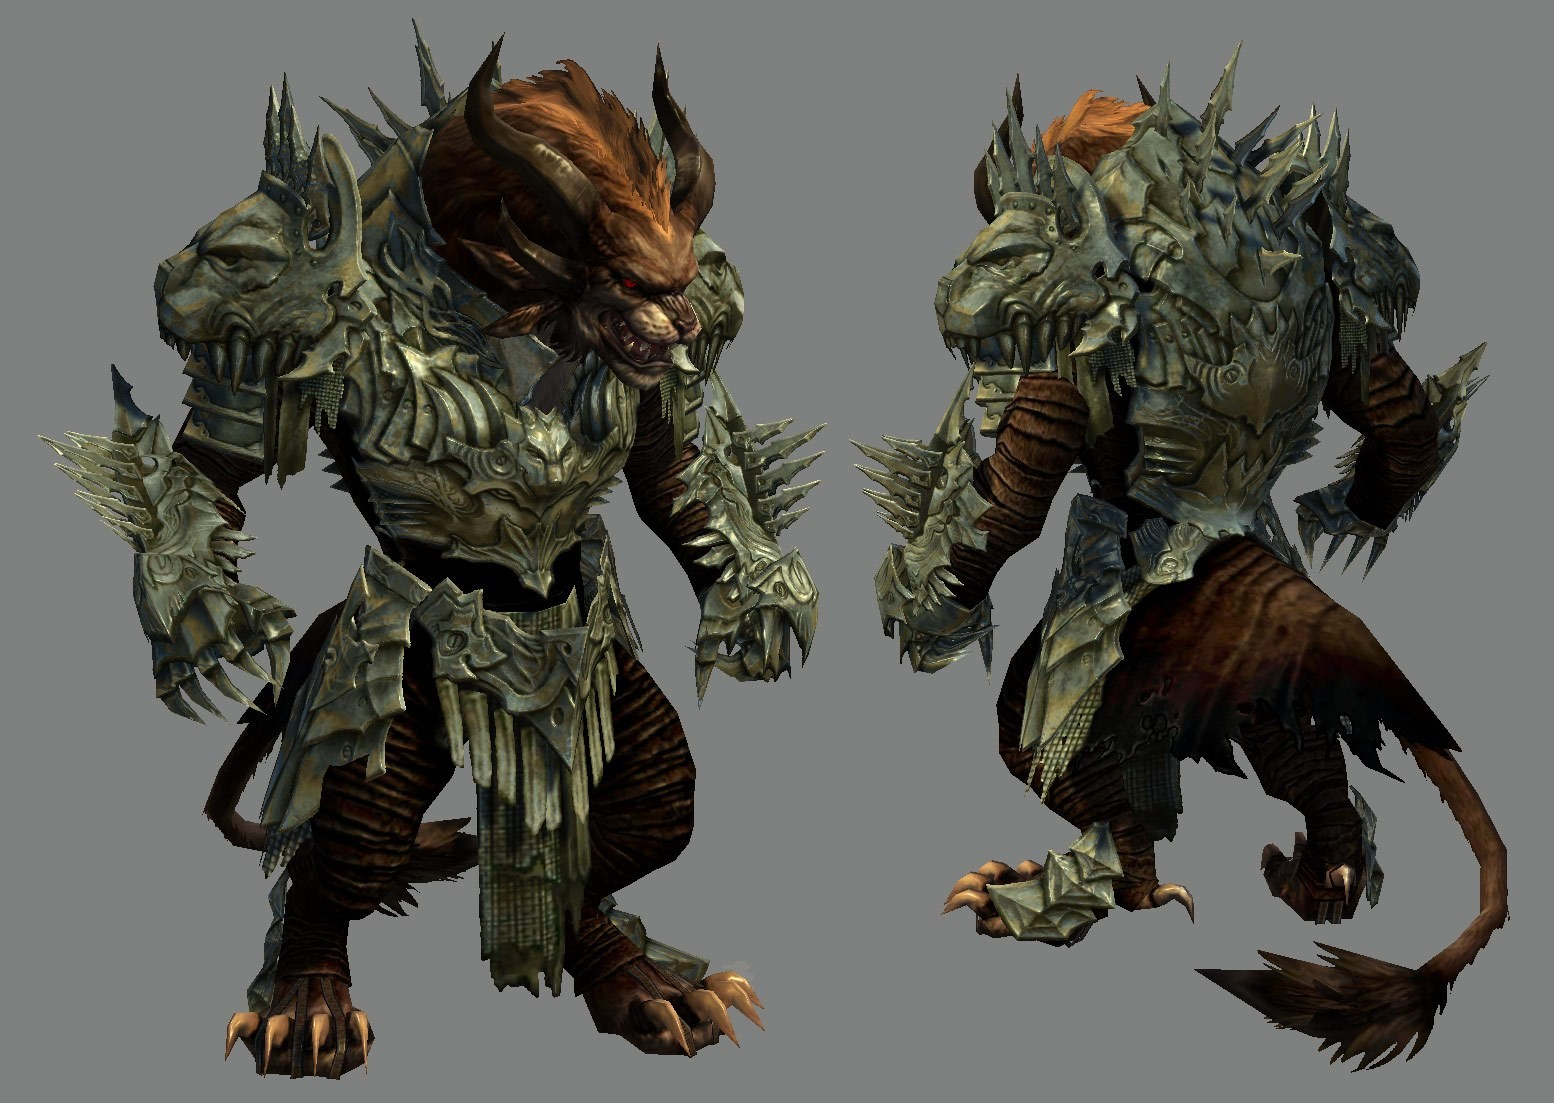 I modeled and textured this armorset based on a design by Kekai Kotaki. Rytlock/Charr base body by Kristen Perry and Susan Jessup.